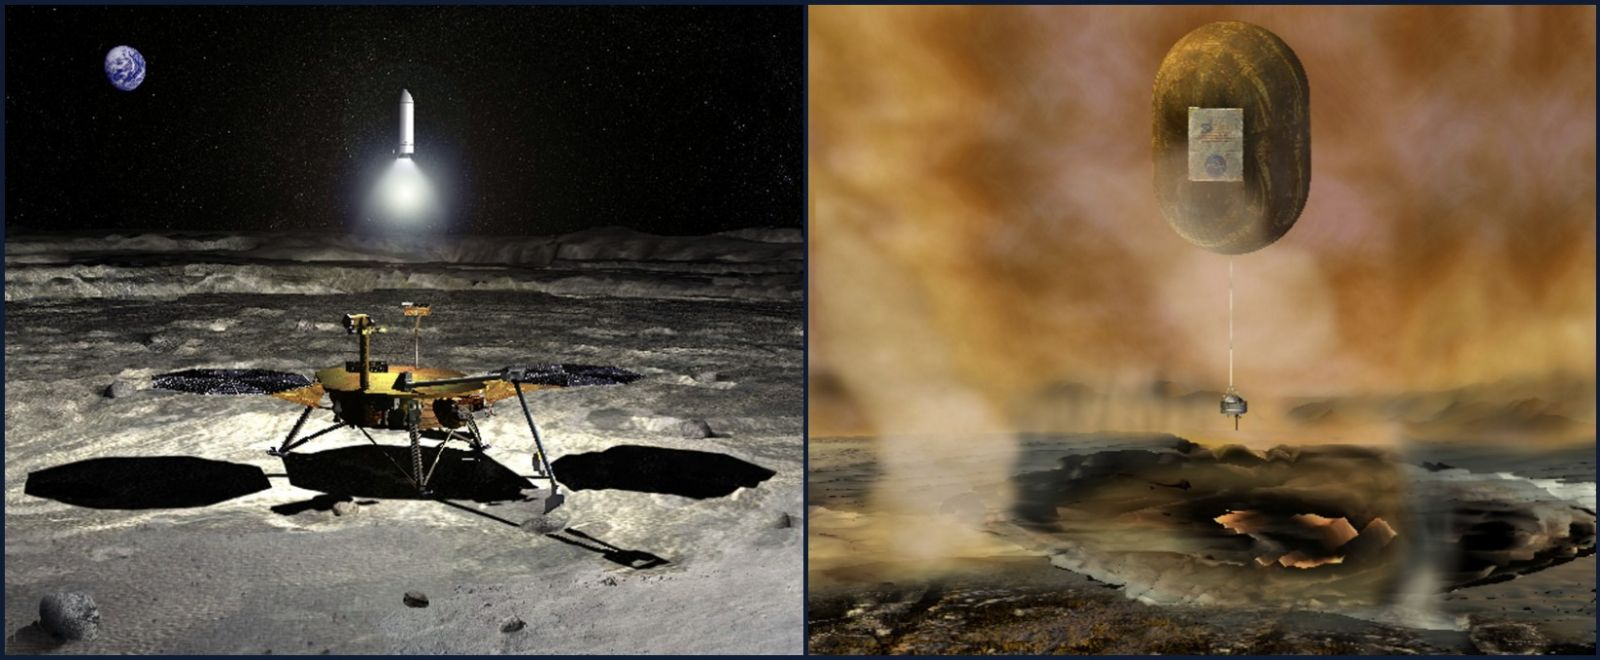 NASA receives proposals for future New Frontiers mission ...